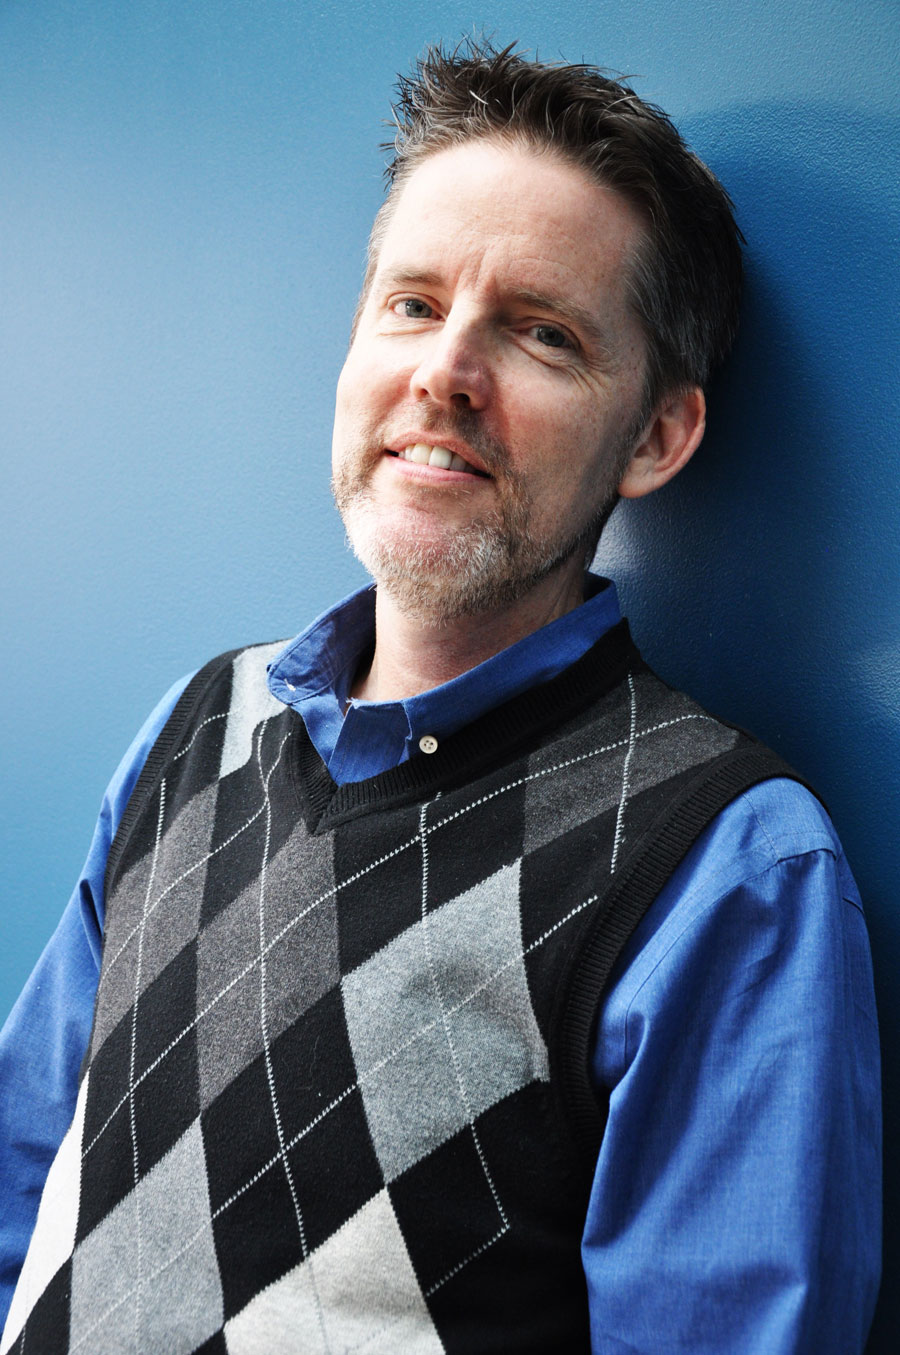 man leaning against blue wall, blue collar shirt on with sweater vest